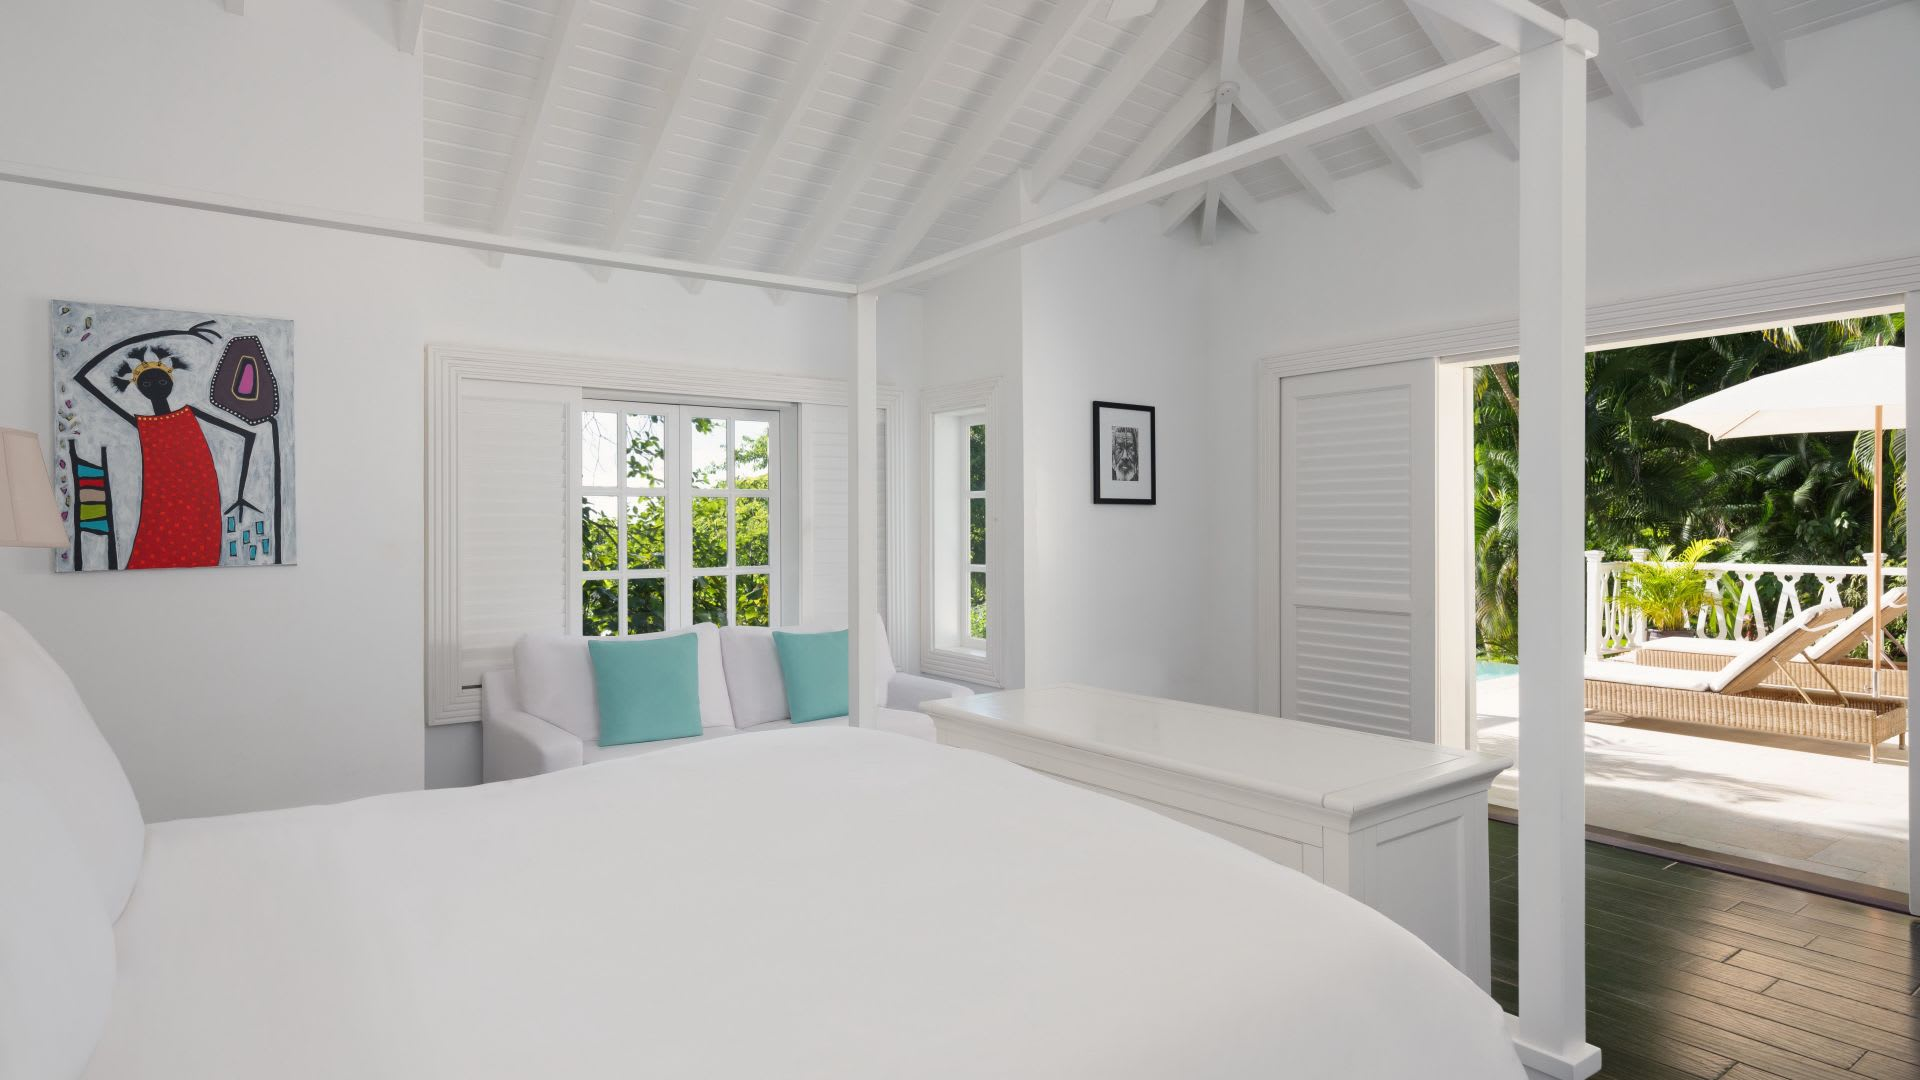 Bedroom and outdoors